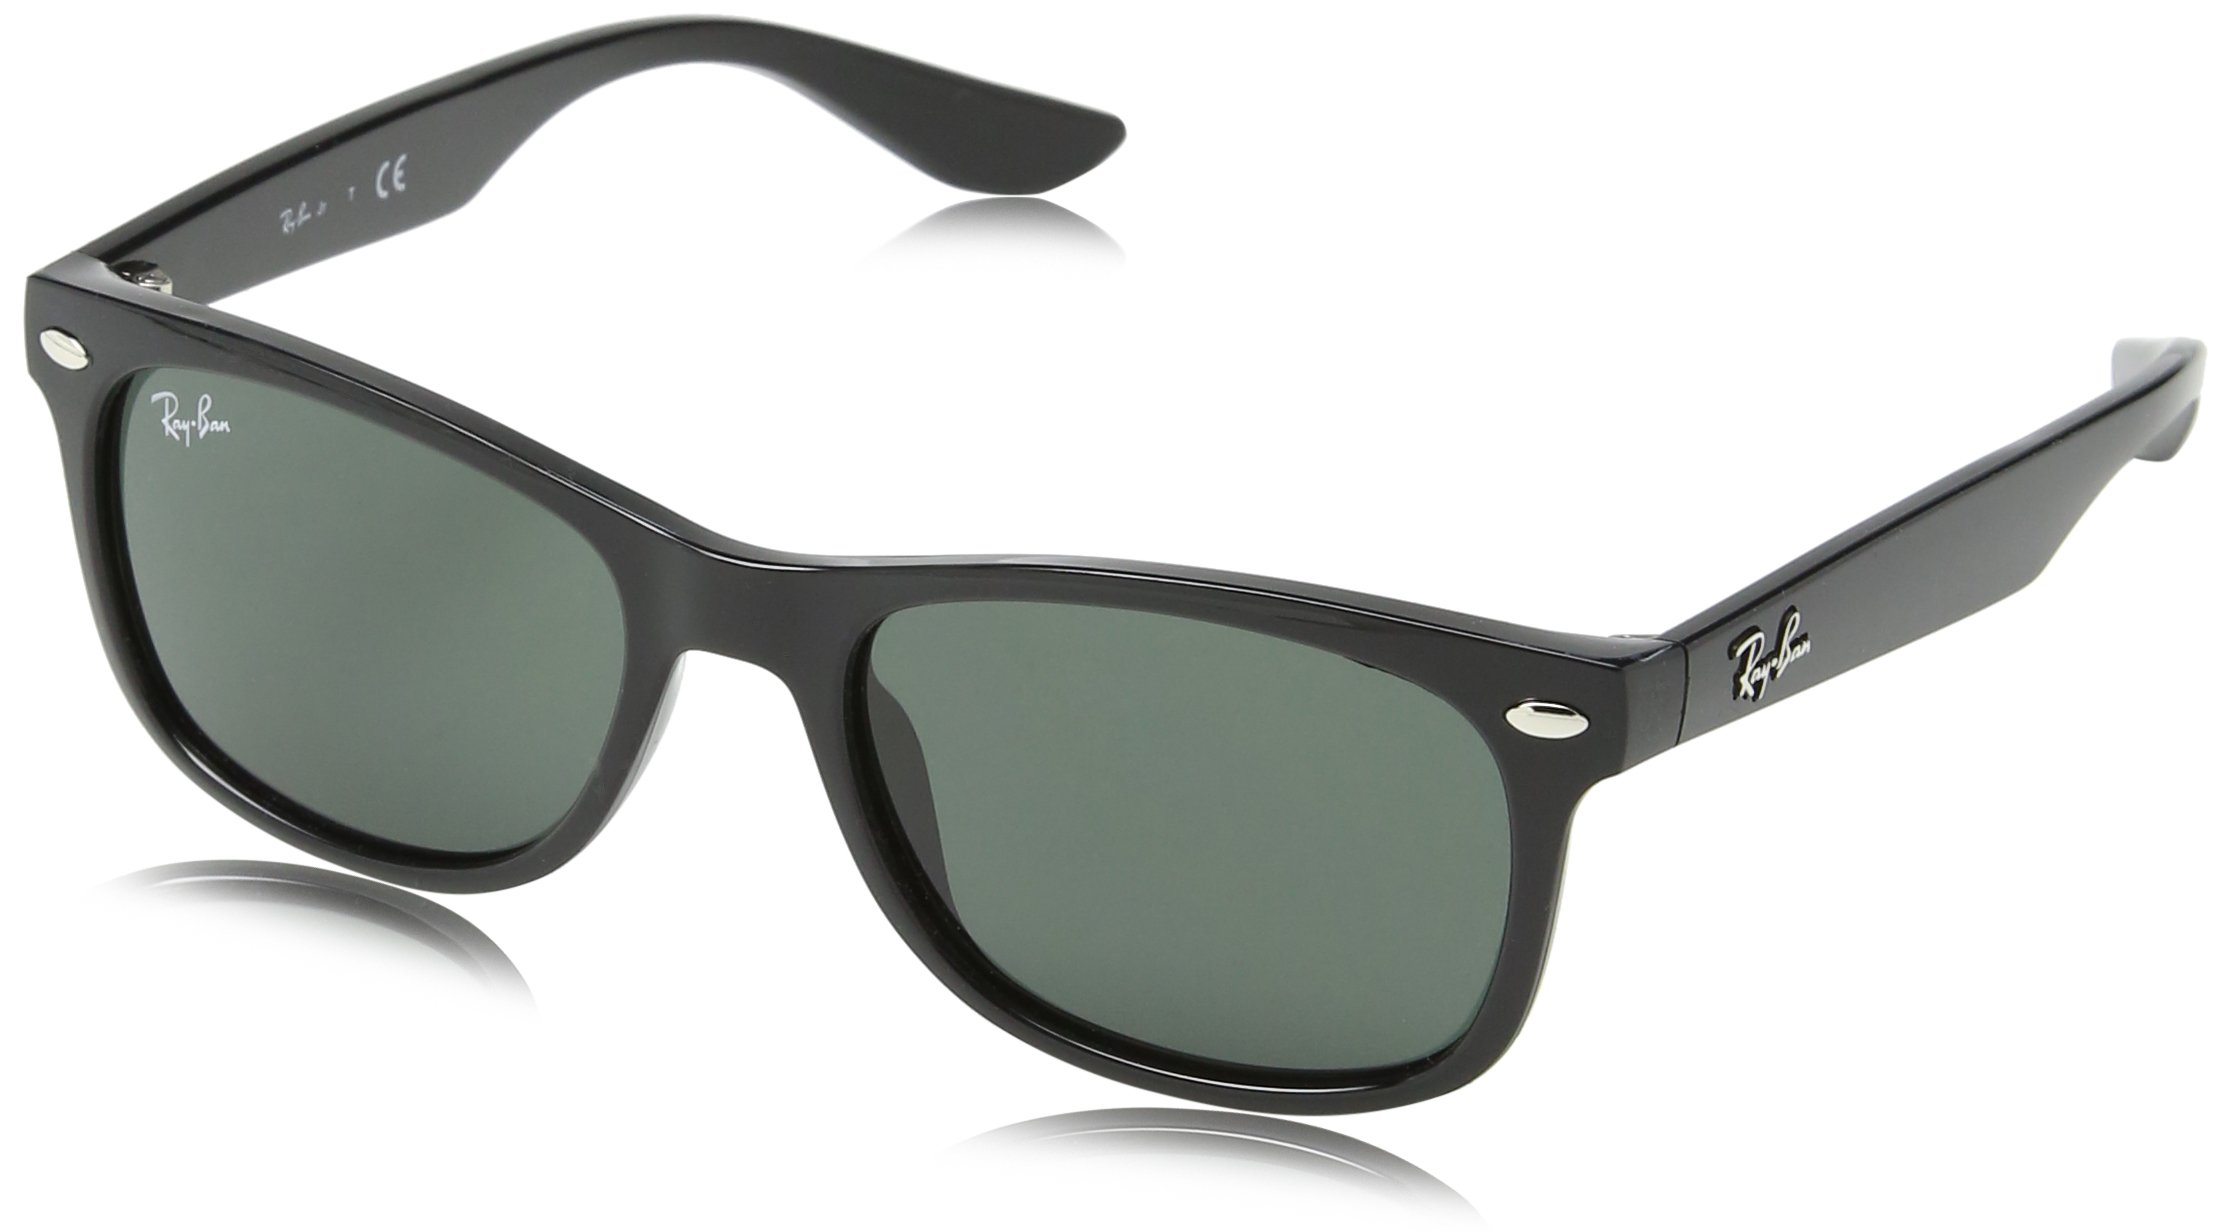 RAY-BAN JUNIOR Kids' RJ9052S New Wayfarer Kids Sunglasses, Black/Green, 48 mm by RAY-BAN JUNIOR